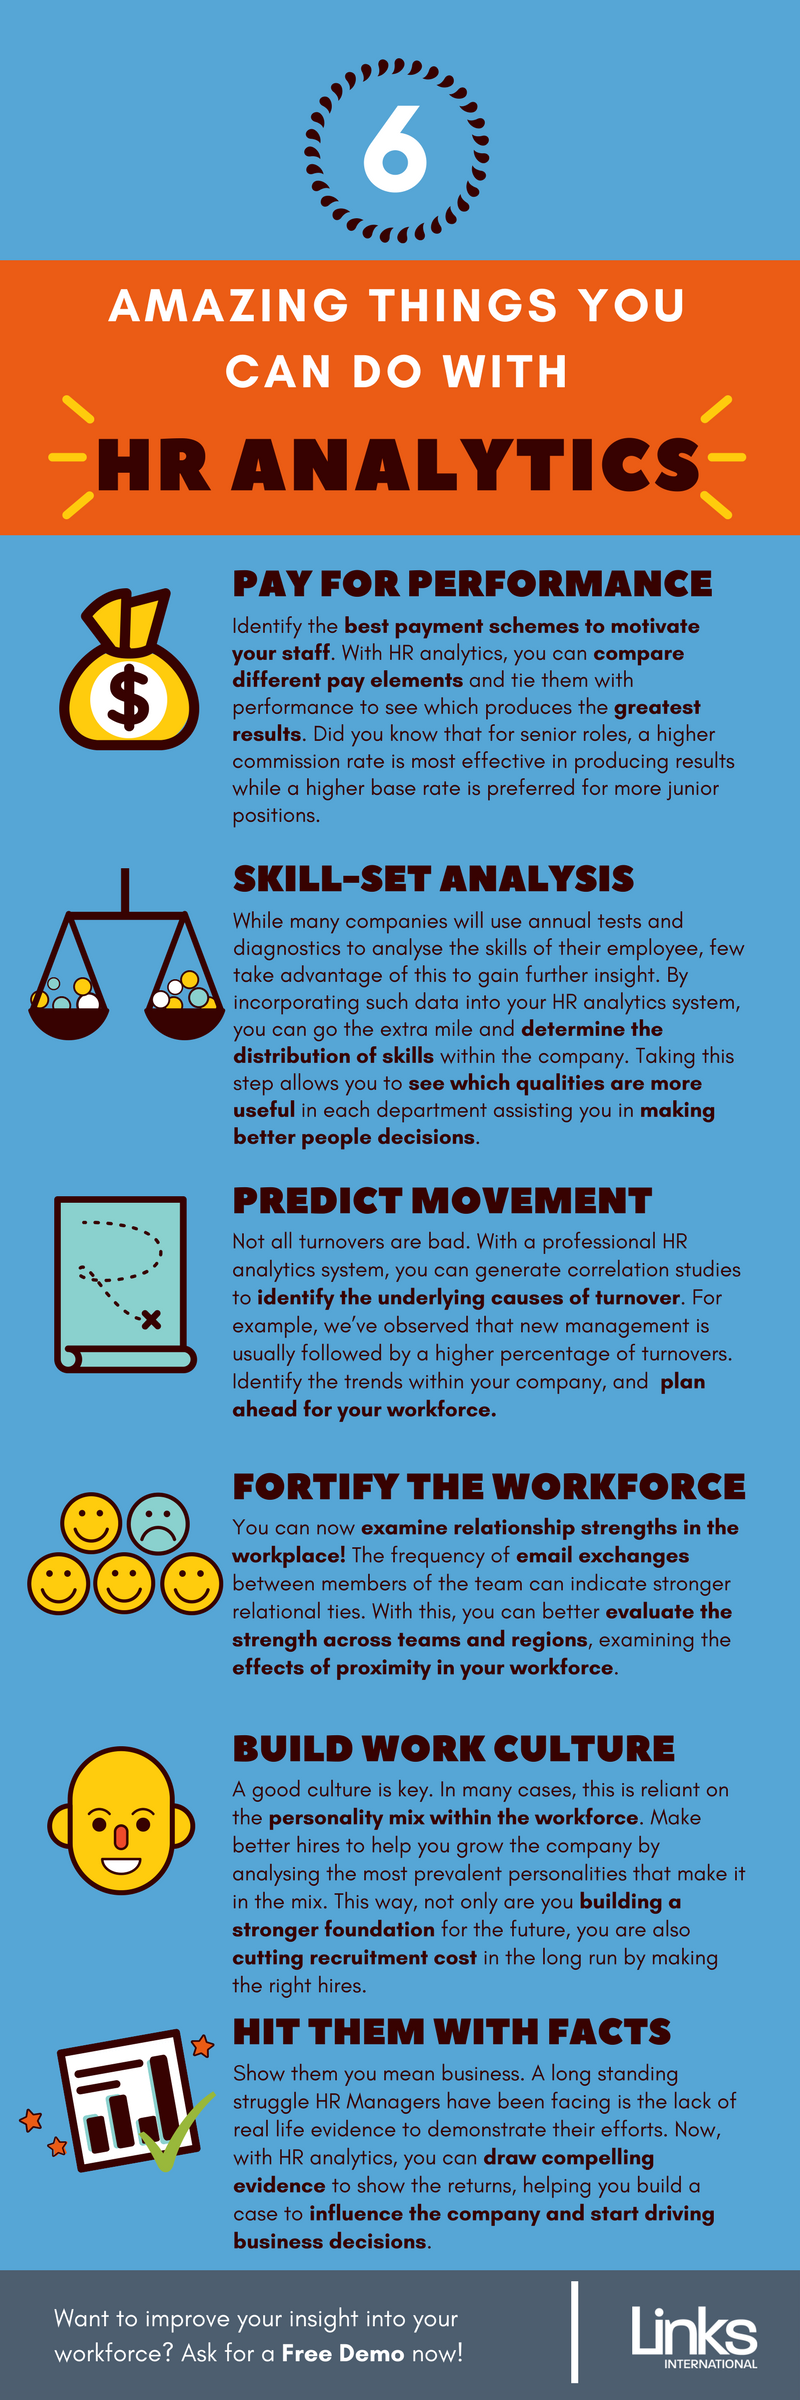 6_Amazing_Things_You_Can_Do_With_HR_Analytics_INFOGRAPHIC.png